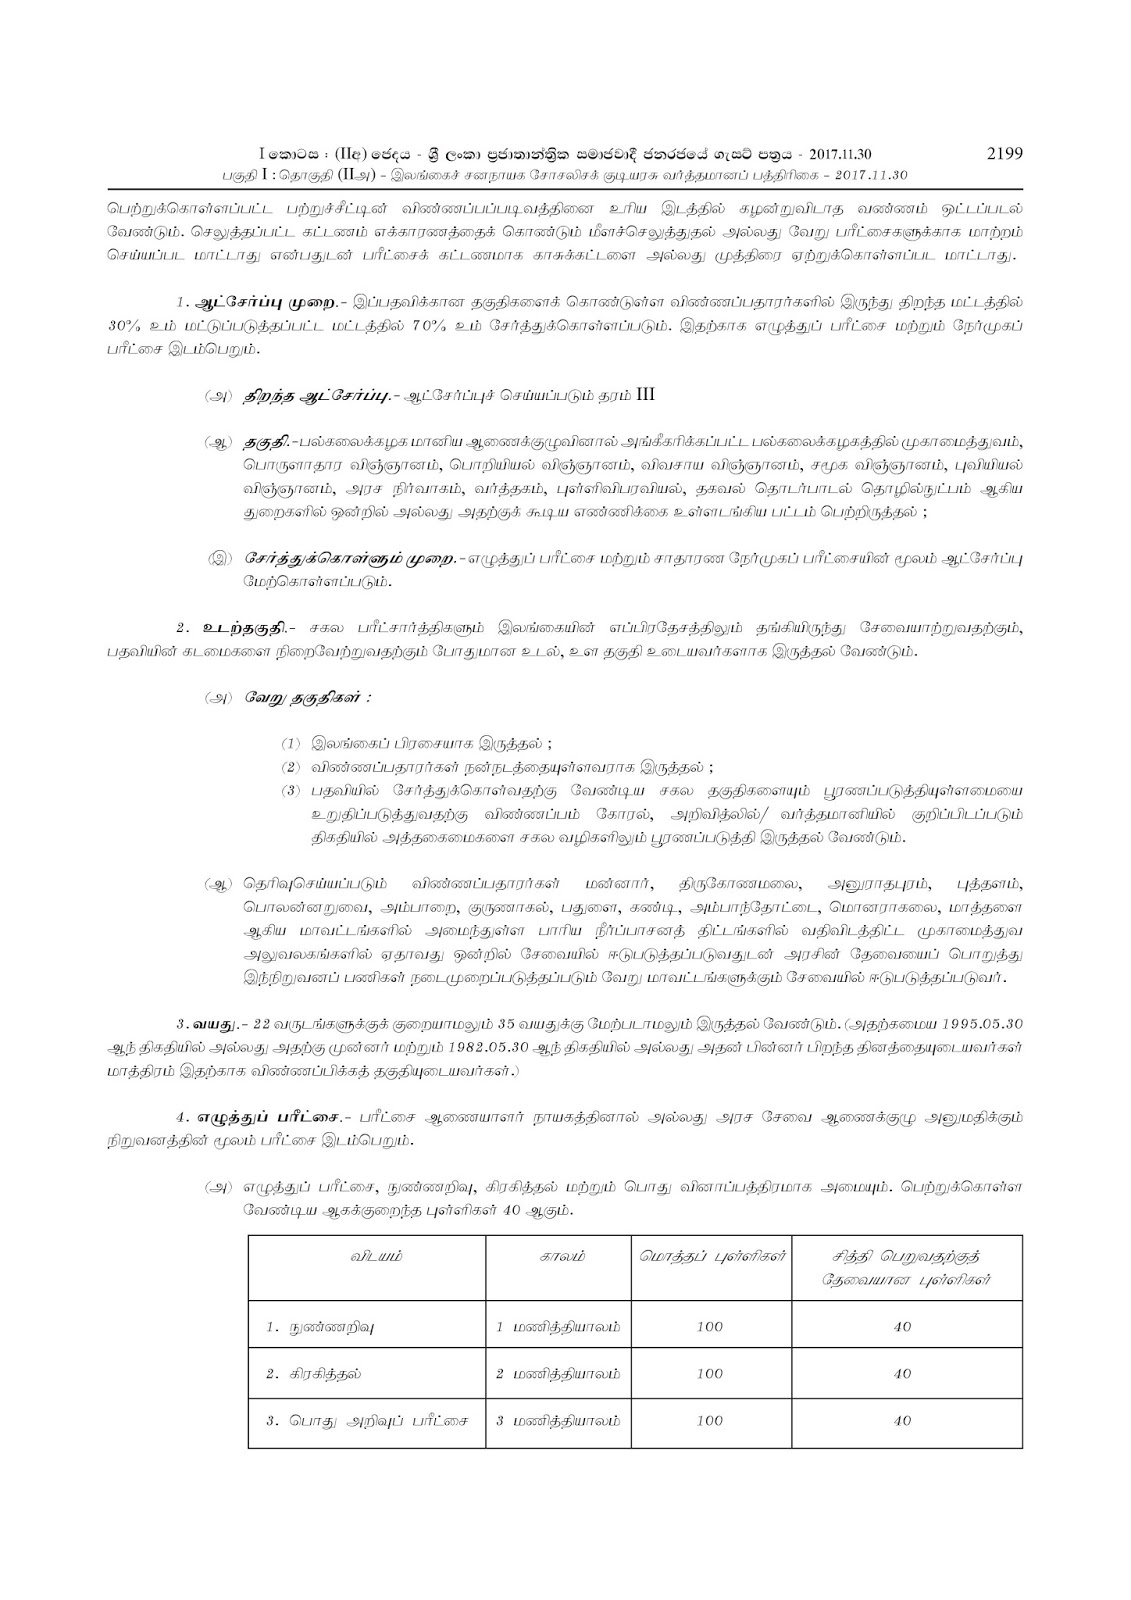 Application called resident project manager ministry of the open competitive examination for the recruitment to the grade ii of the post of resident project manager in the irrigaiton management divition of the thecheapjerseys Image collections